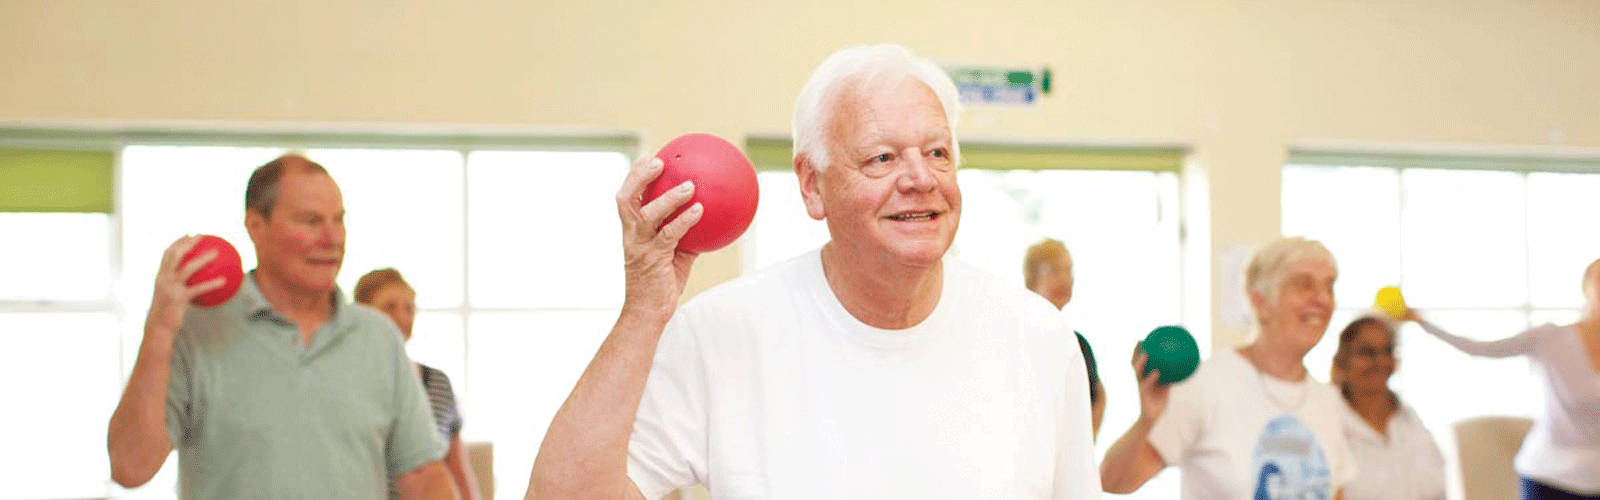 A man doing exercises with a red ball at an exercise class